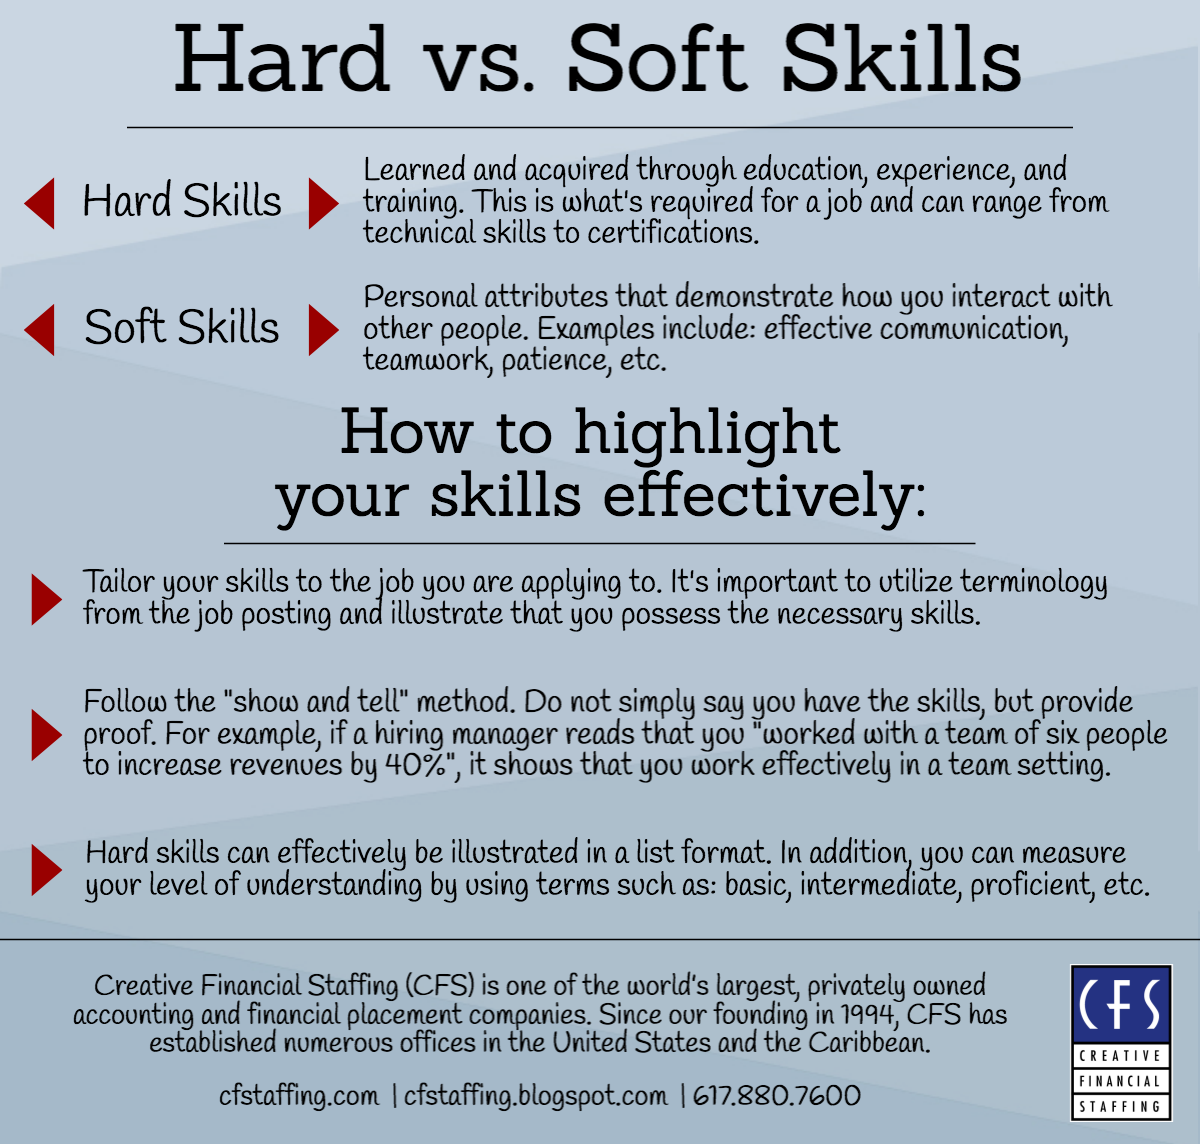 creative financial staffing the difference between hard and soft skills